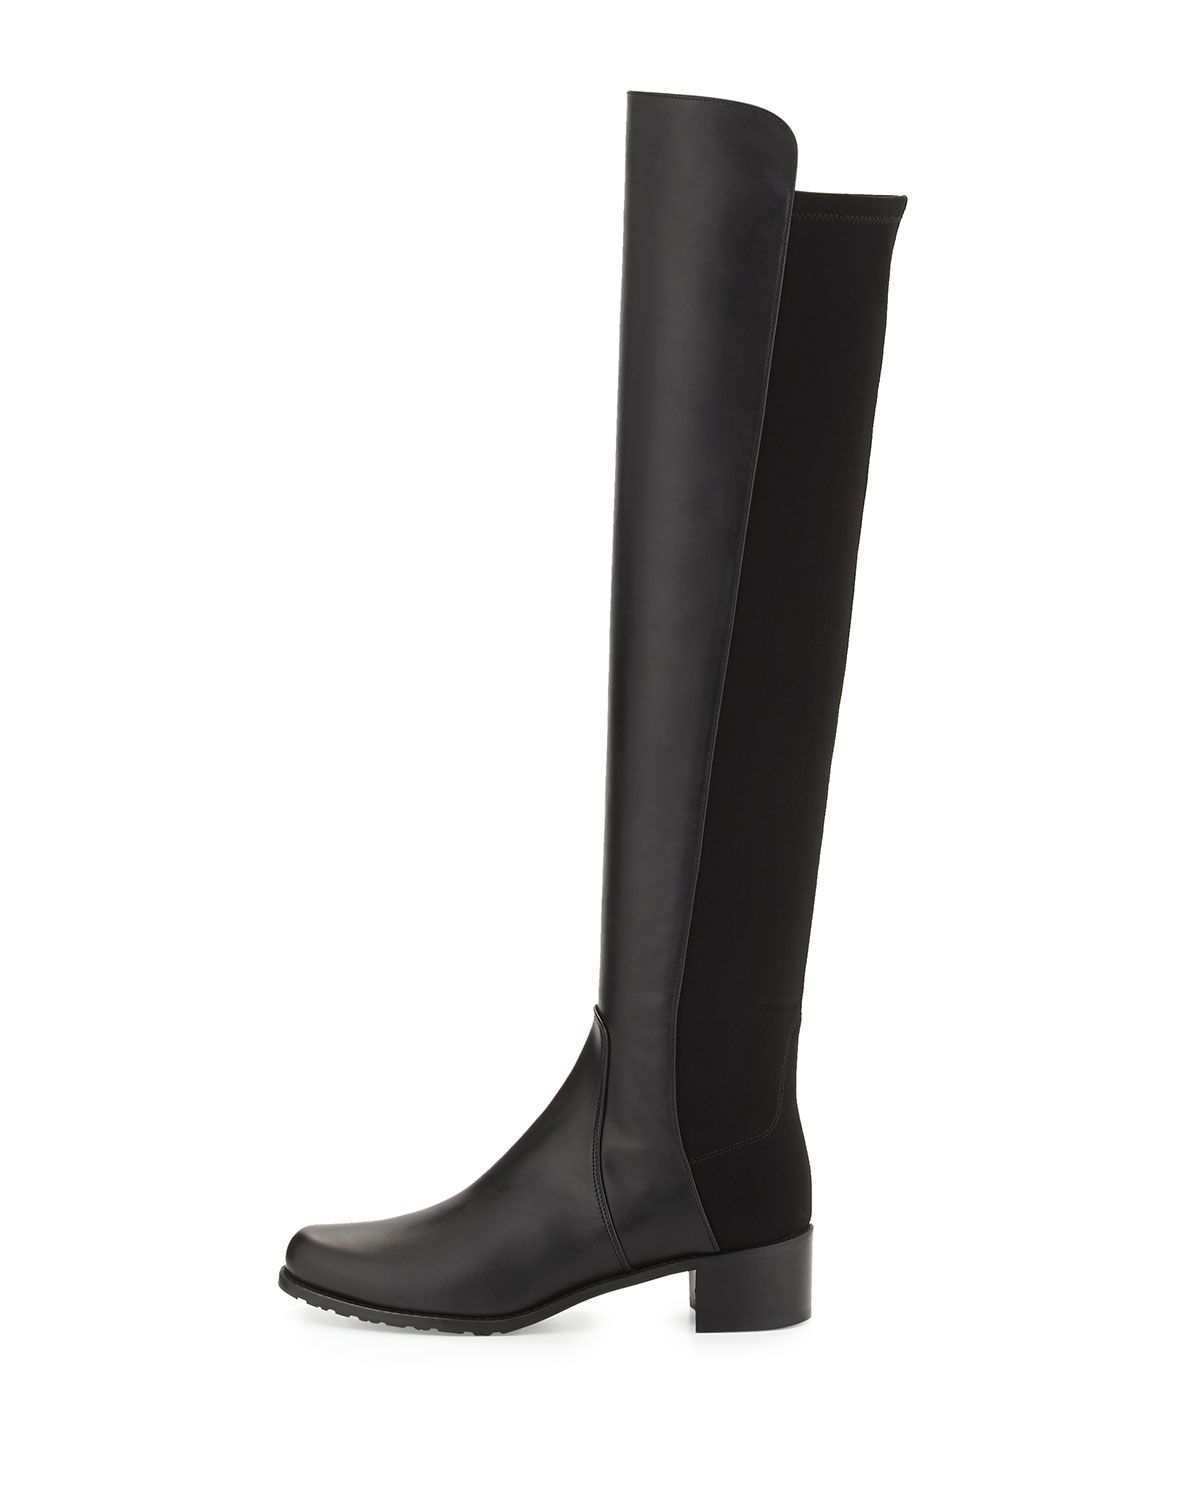 Build Your Own To-the-Knee Boot